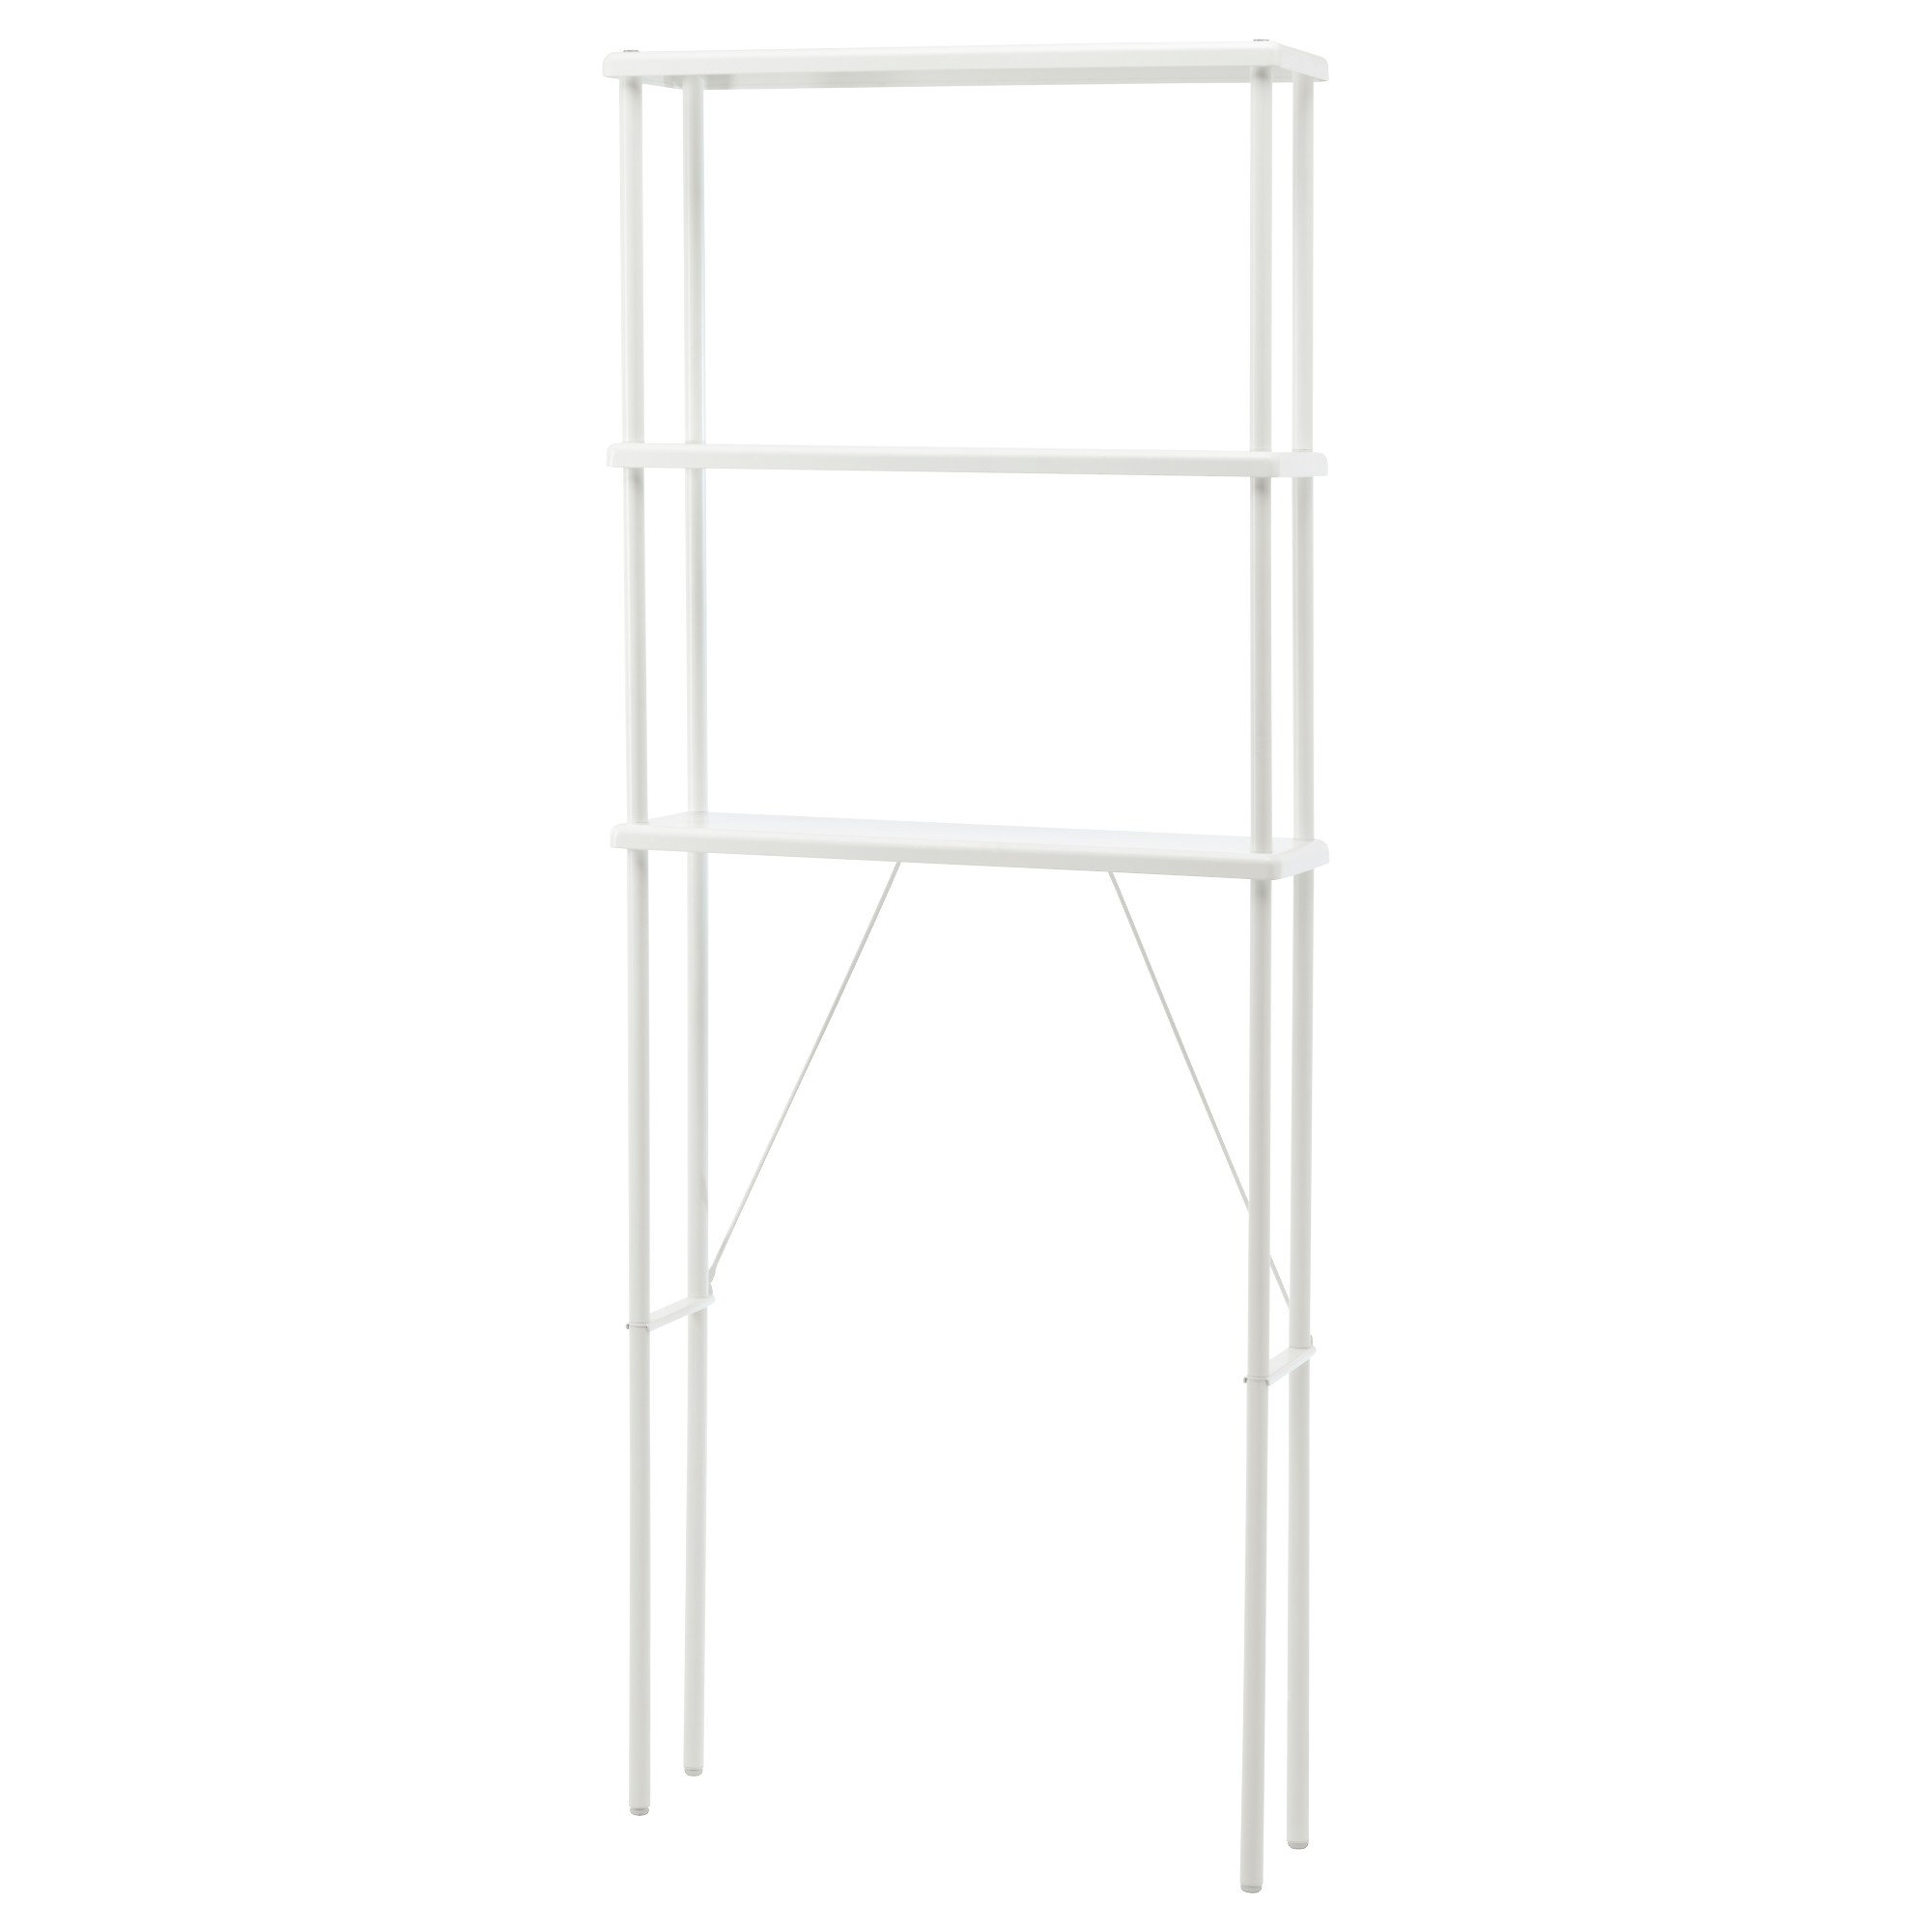 Shelf unit to straddle kitchen trash can?